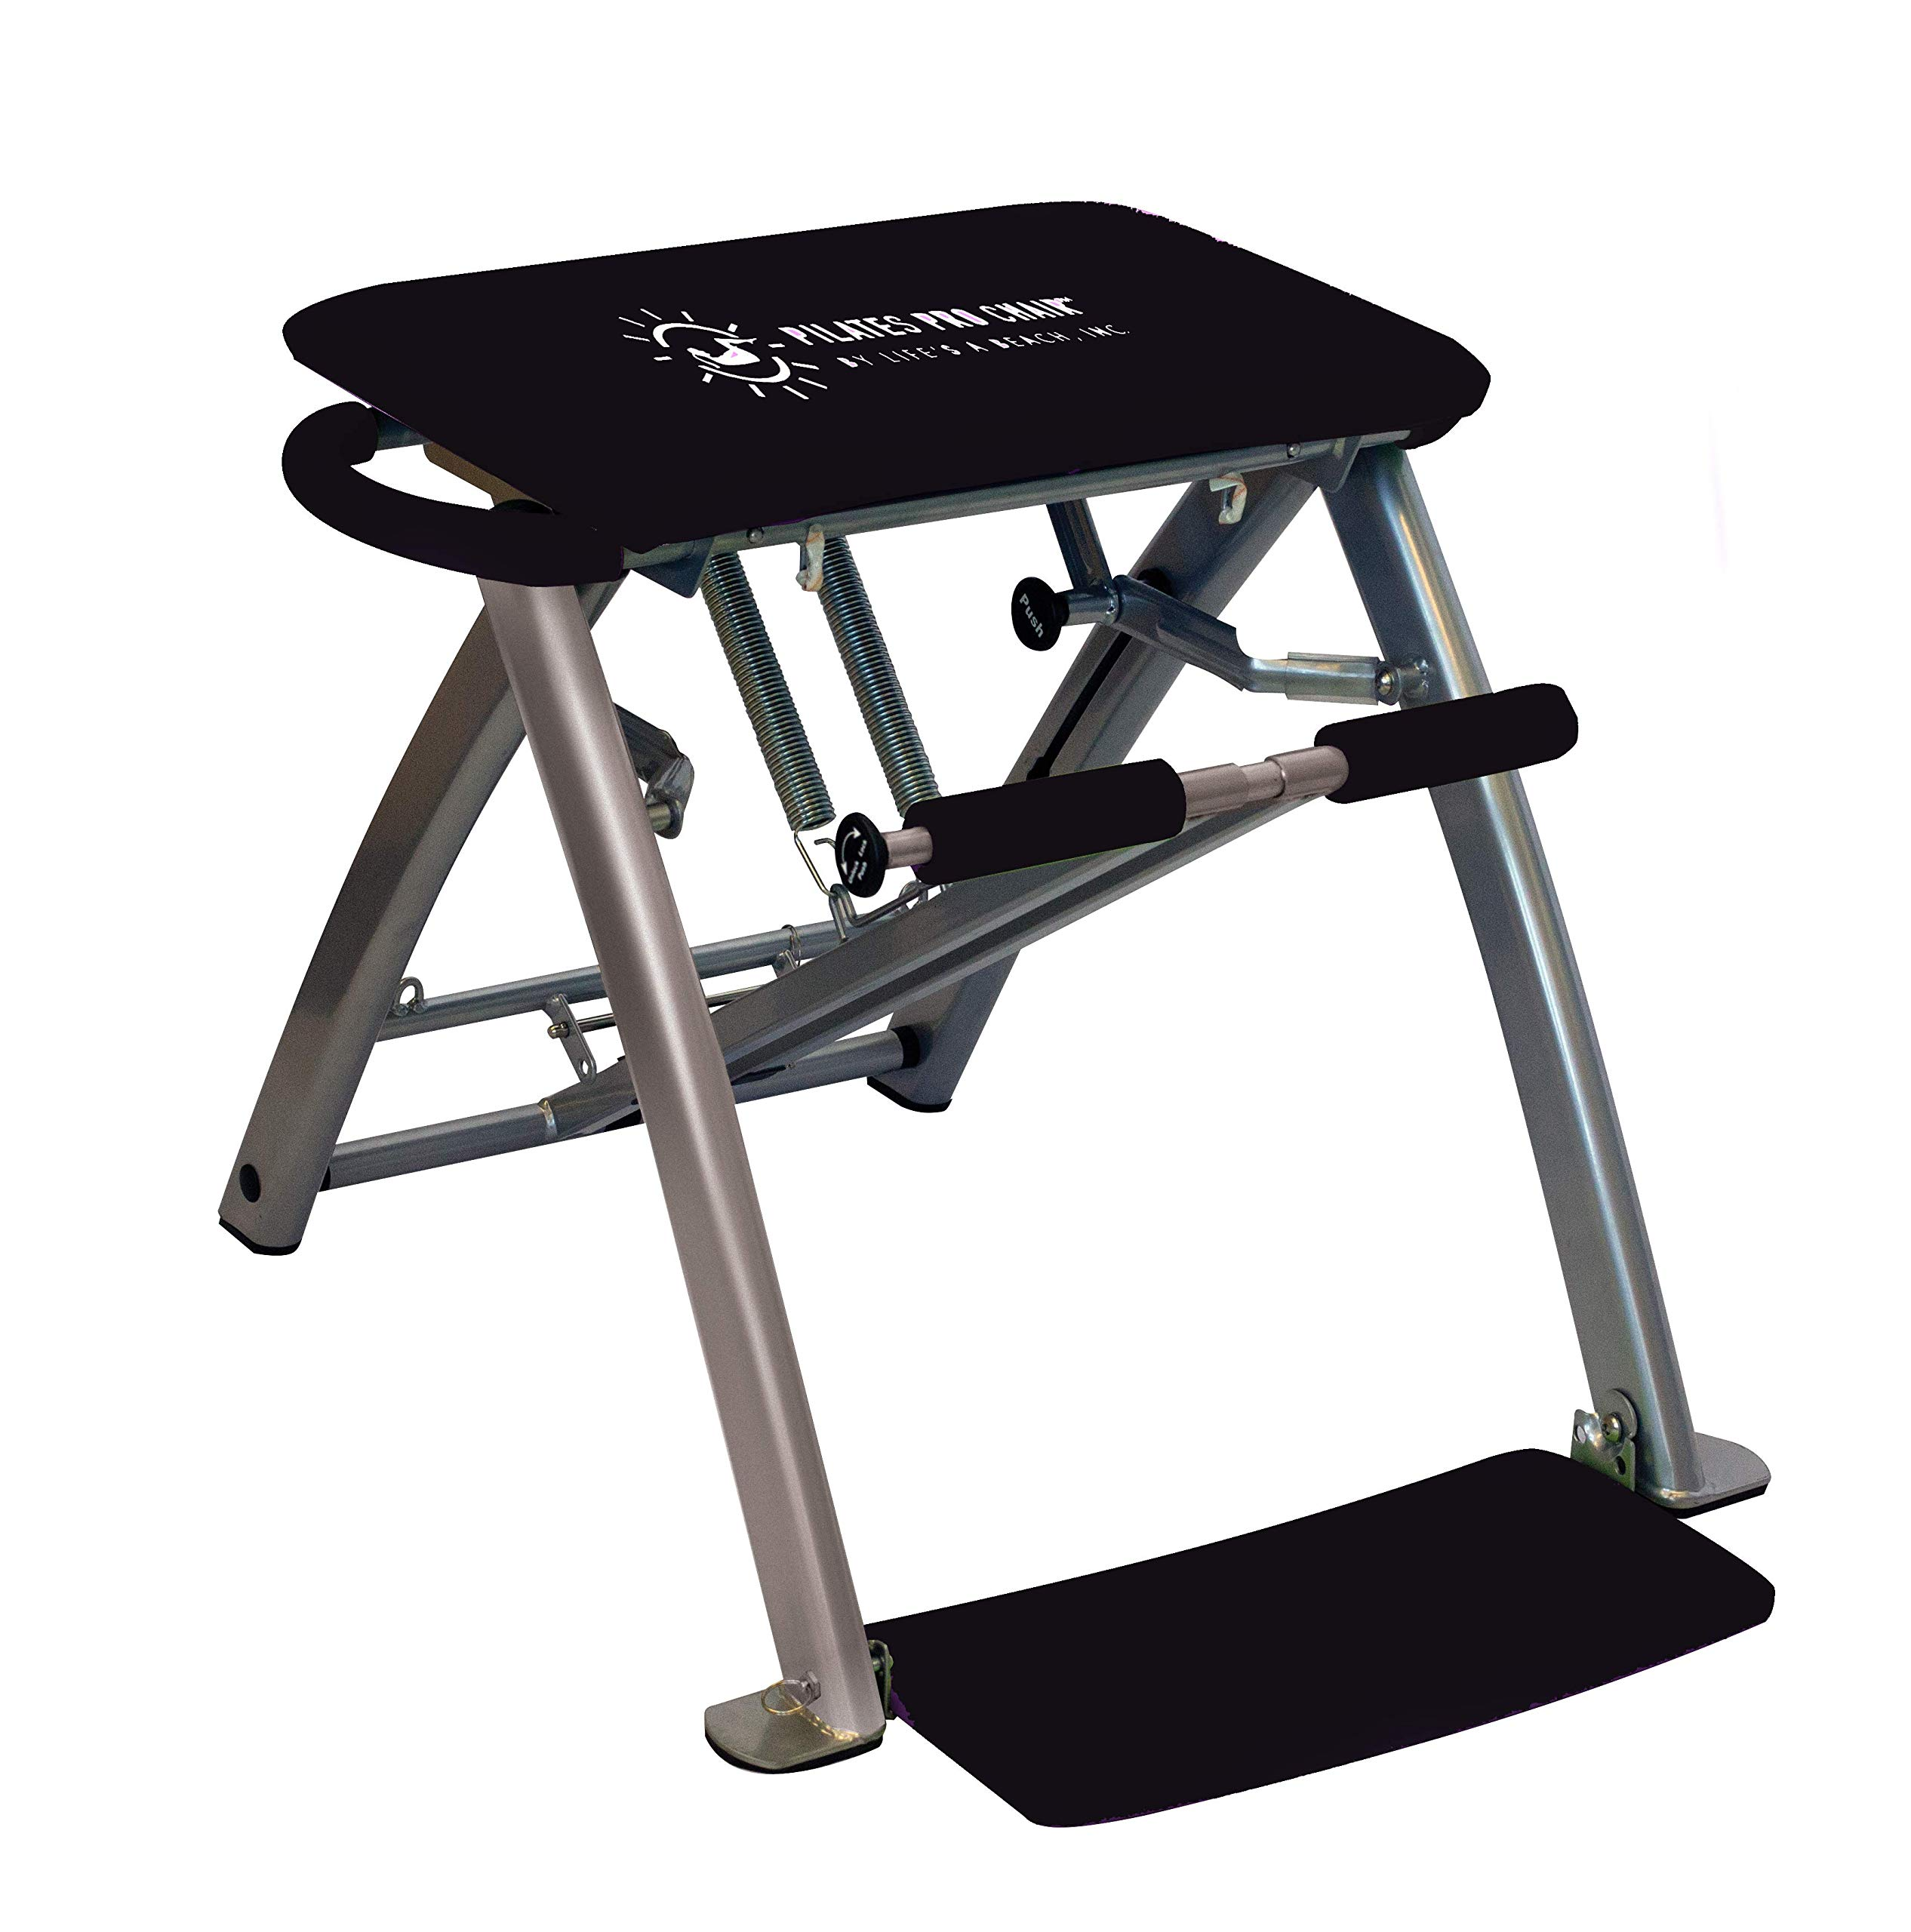 Life's A Beach Pilates PRO Chair with 4 DVDs (Black)